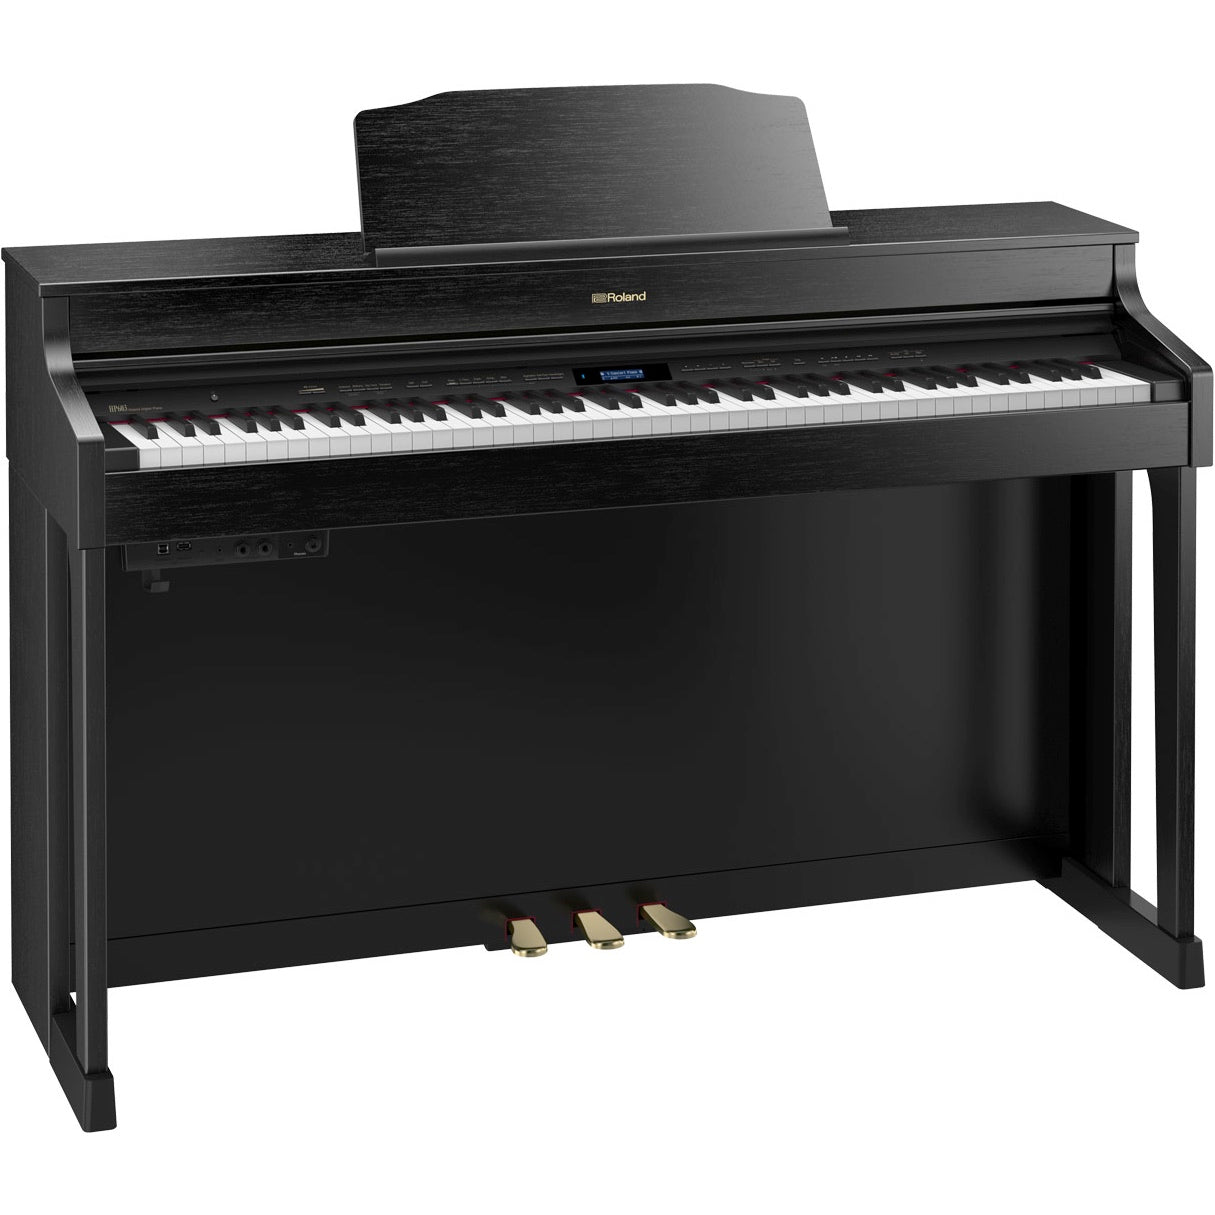 Roland HP603 Digital Home Piano - Contemporary Black | Music Experience | Shop Online | South Africa